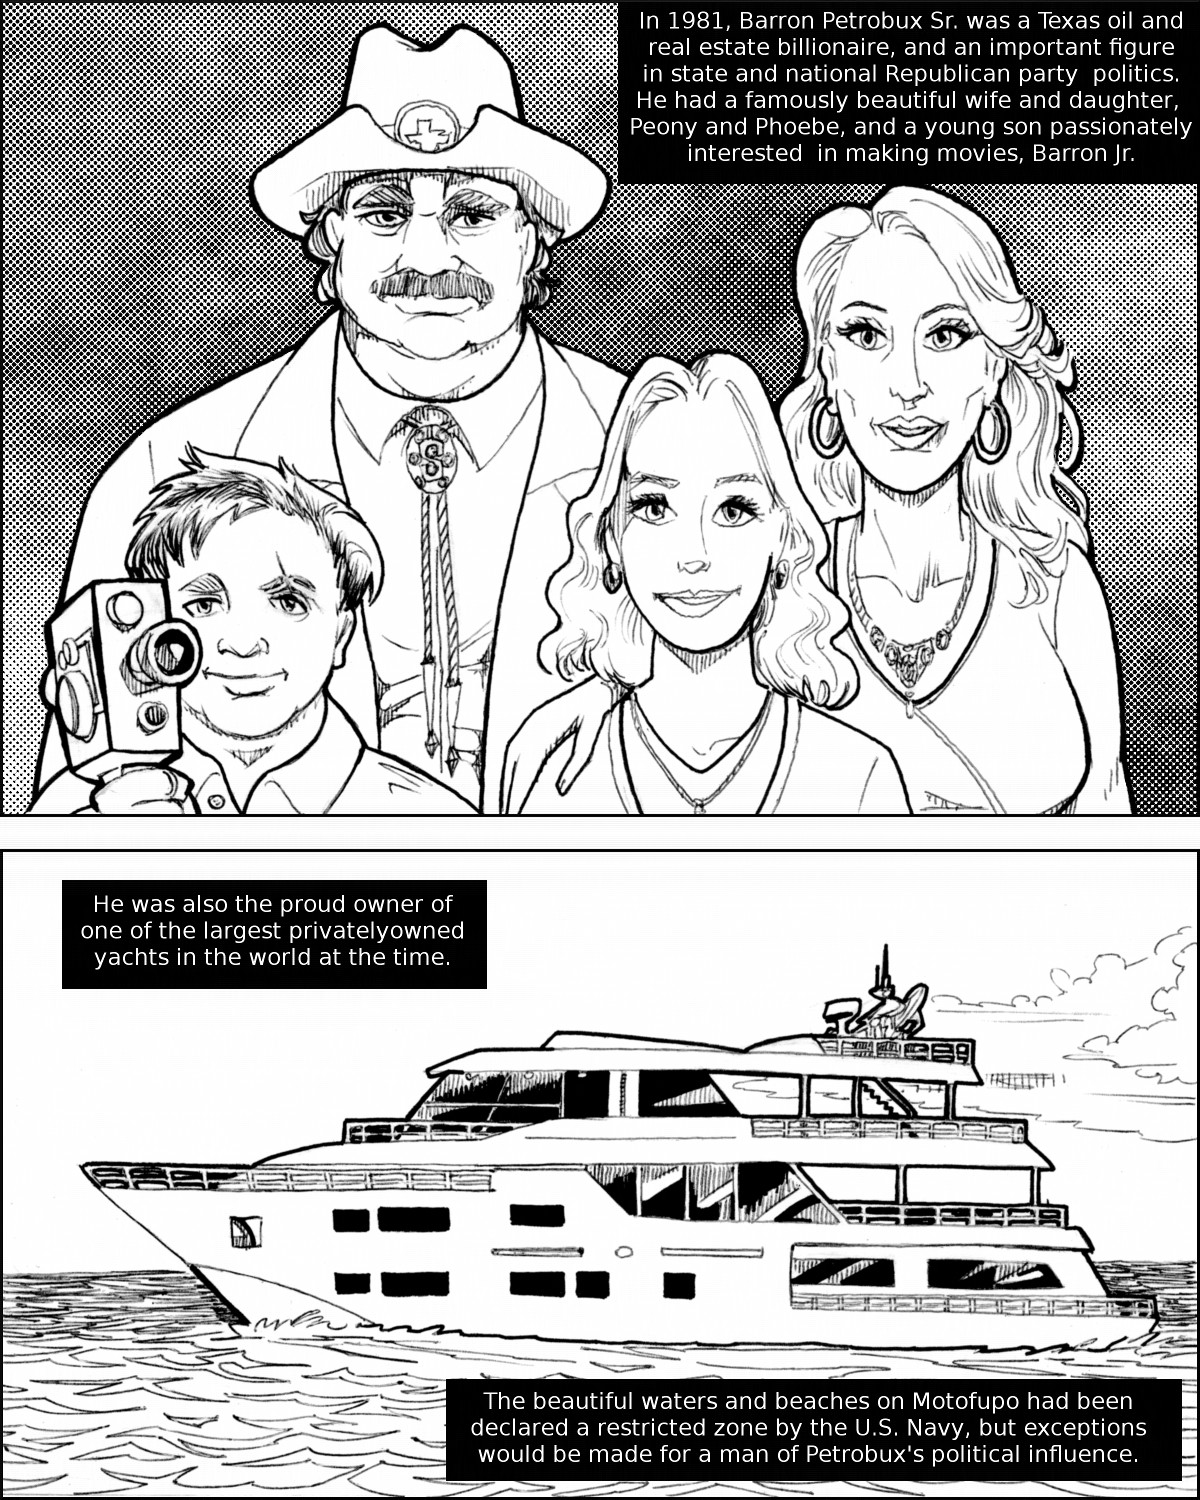 Barron Petrobux and his charming family go on a cruise in the South Pacific.